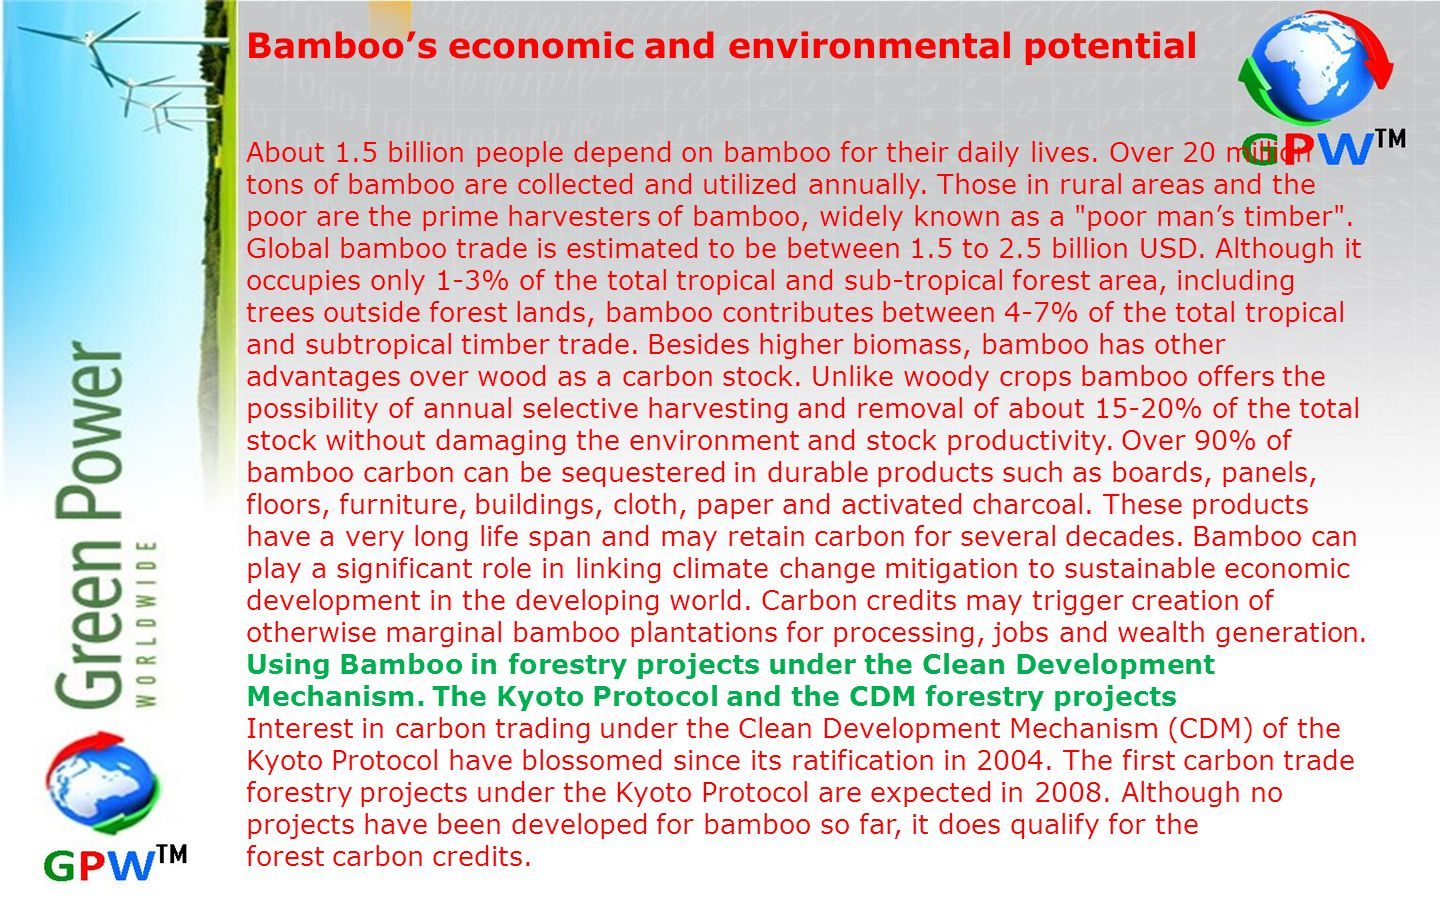 Bamboo's economic and environmental potential